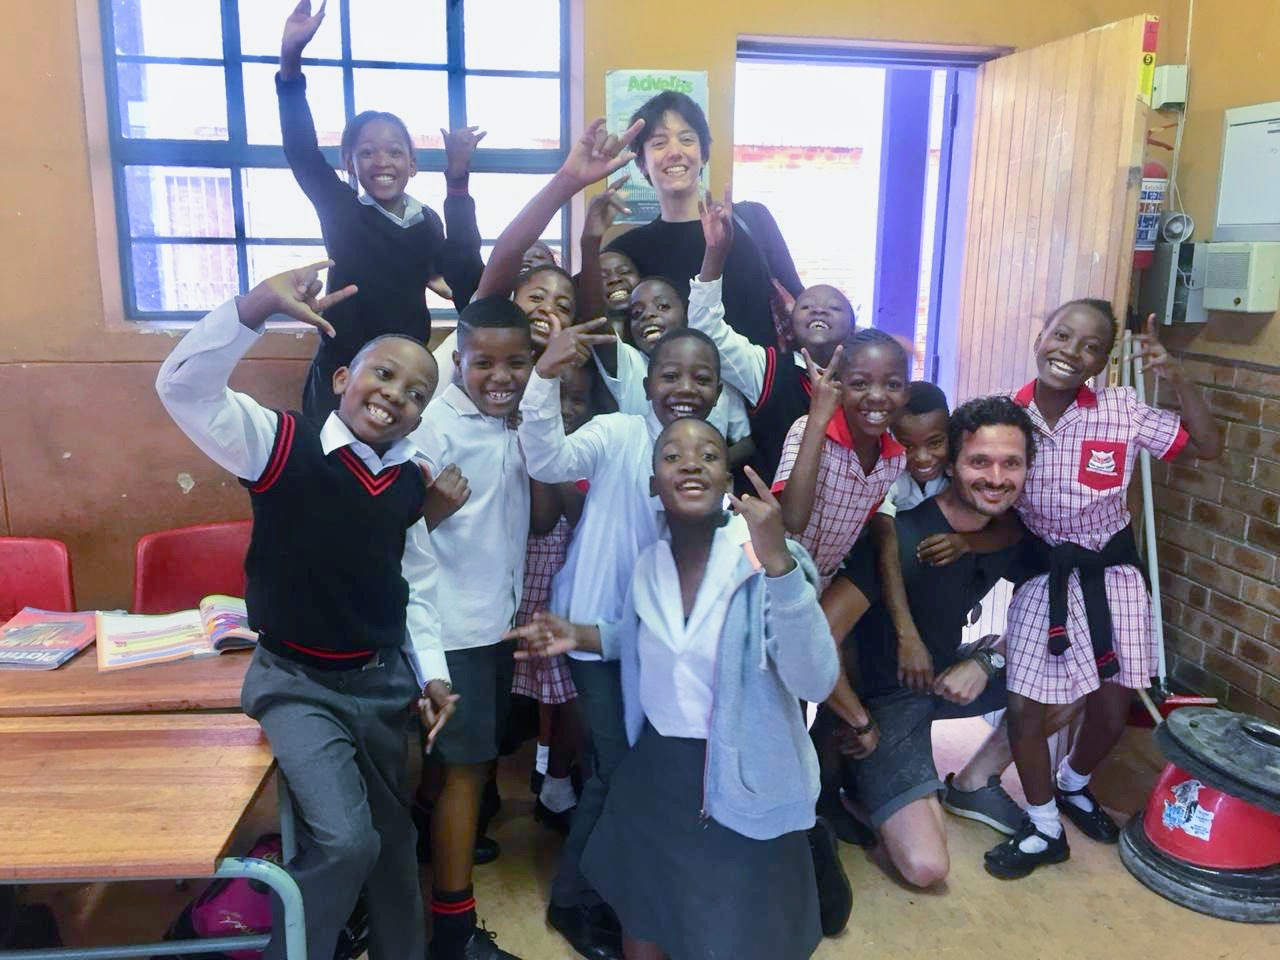 Our visit at Gordon Primary School in Alexandra. The kids get their first exposure to the Yoga4Alex program through 30 minute classes that take place during the school day in their classroom.